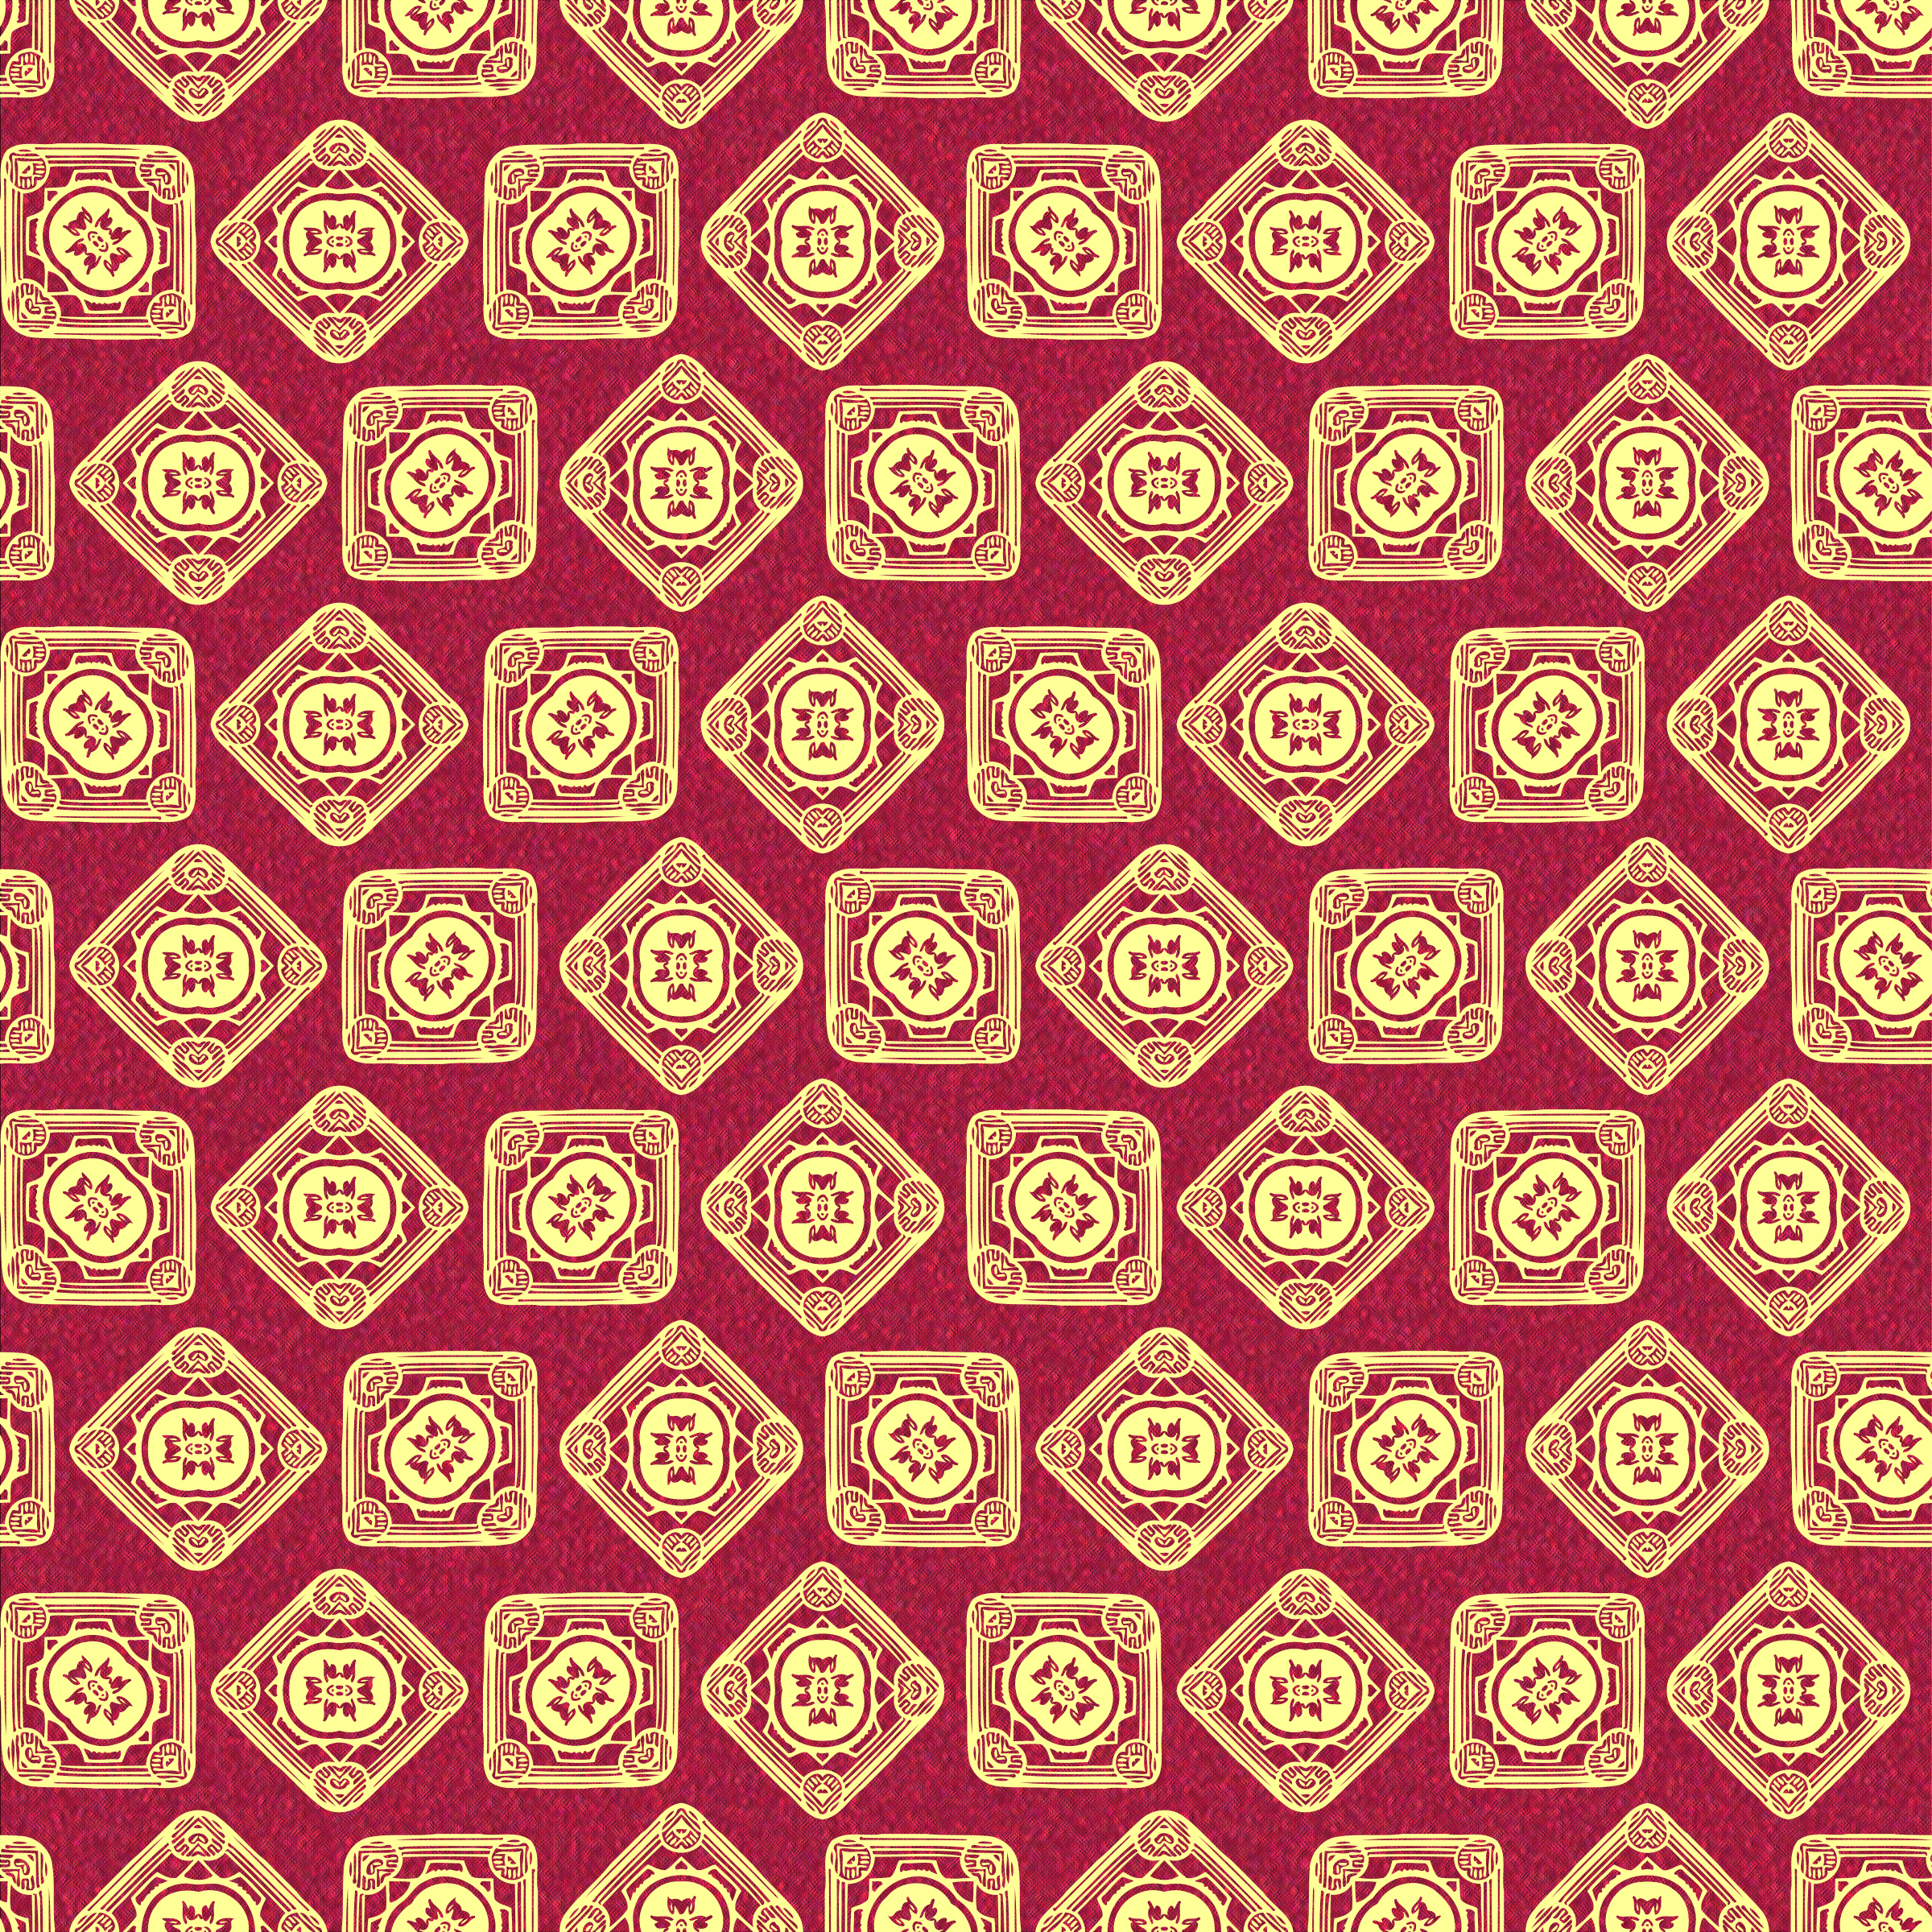 Background pattern 187 (colour 2) by Firkin